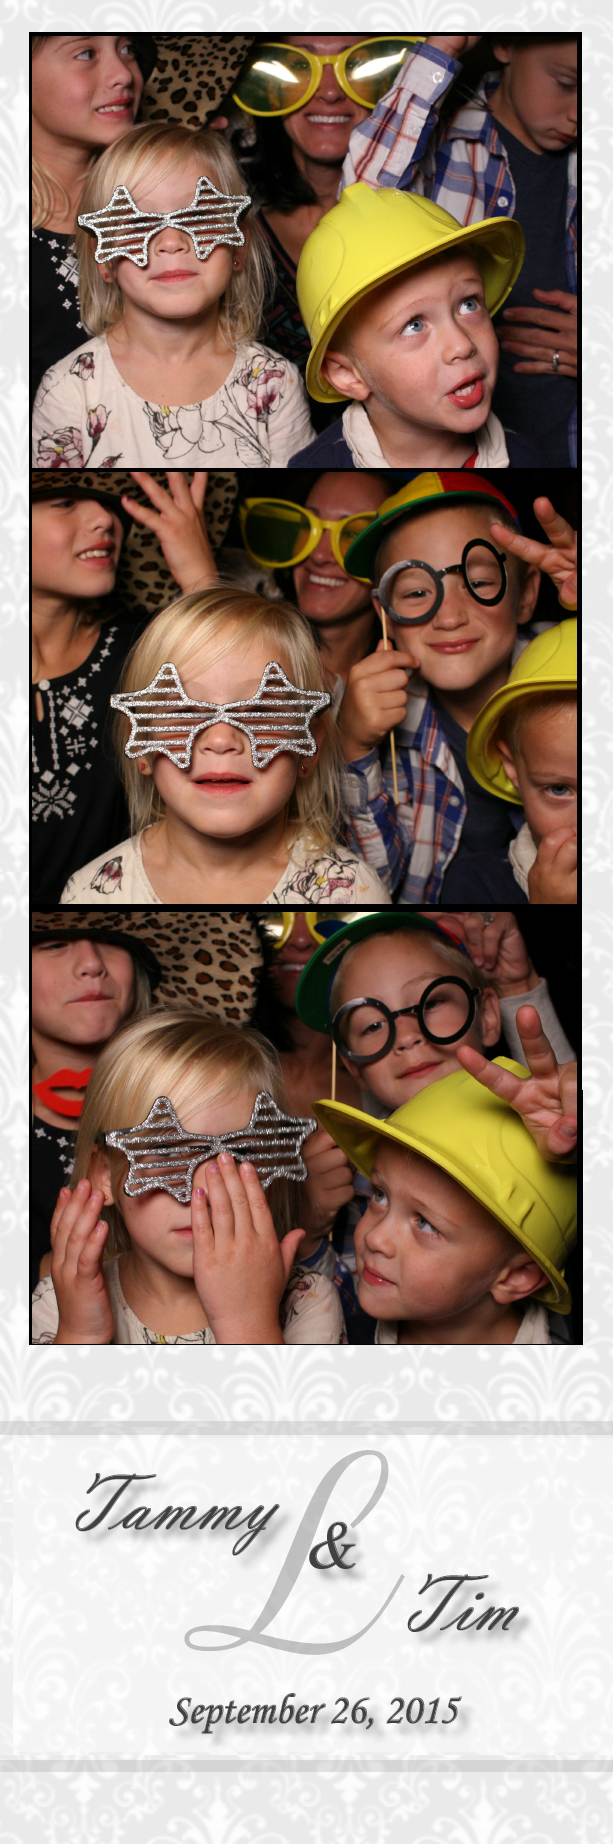 Guest House Events Photo Booth Strips T&T (31).jpg